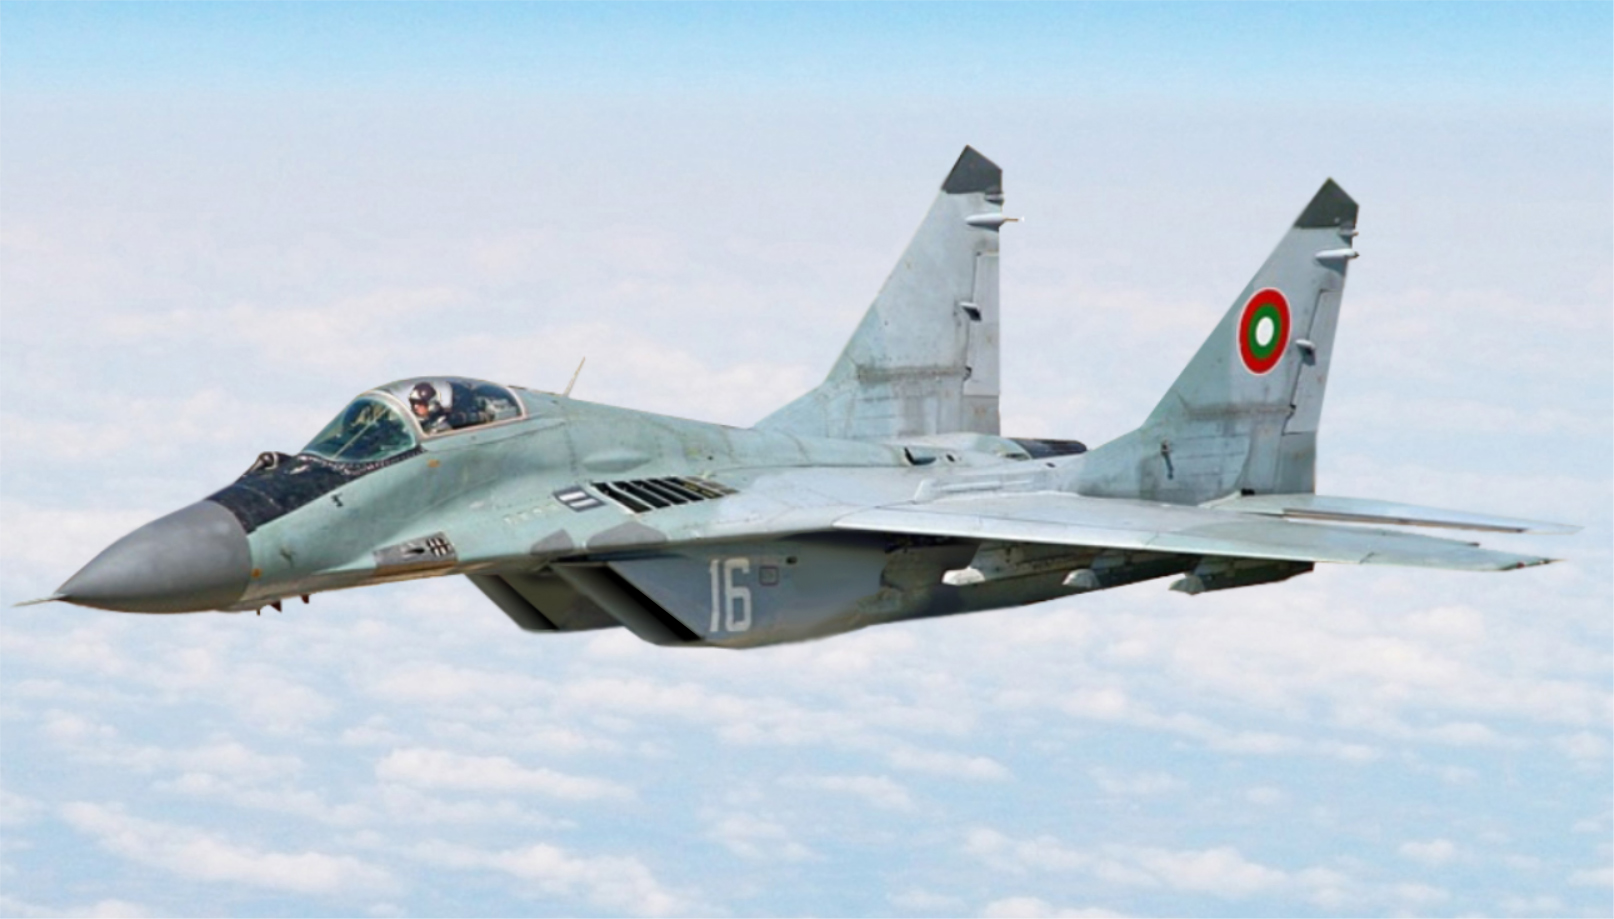 Bulgarian Air Force fighter crashed over the Black Sea